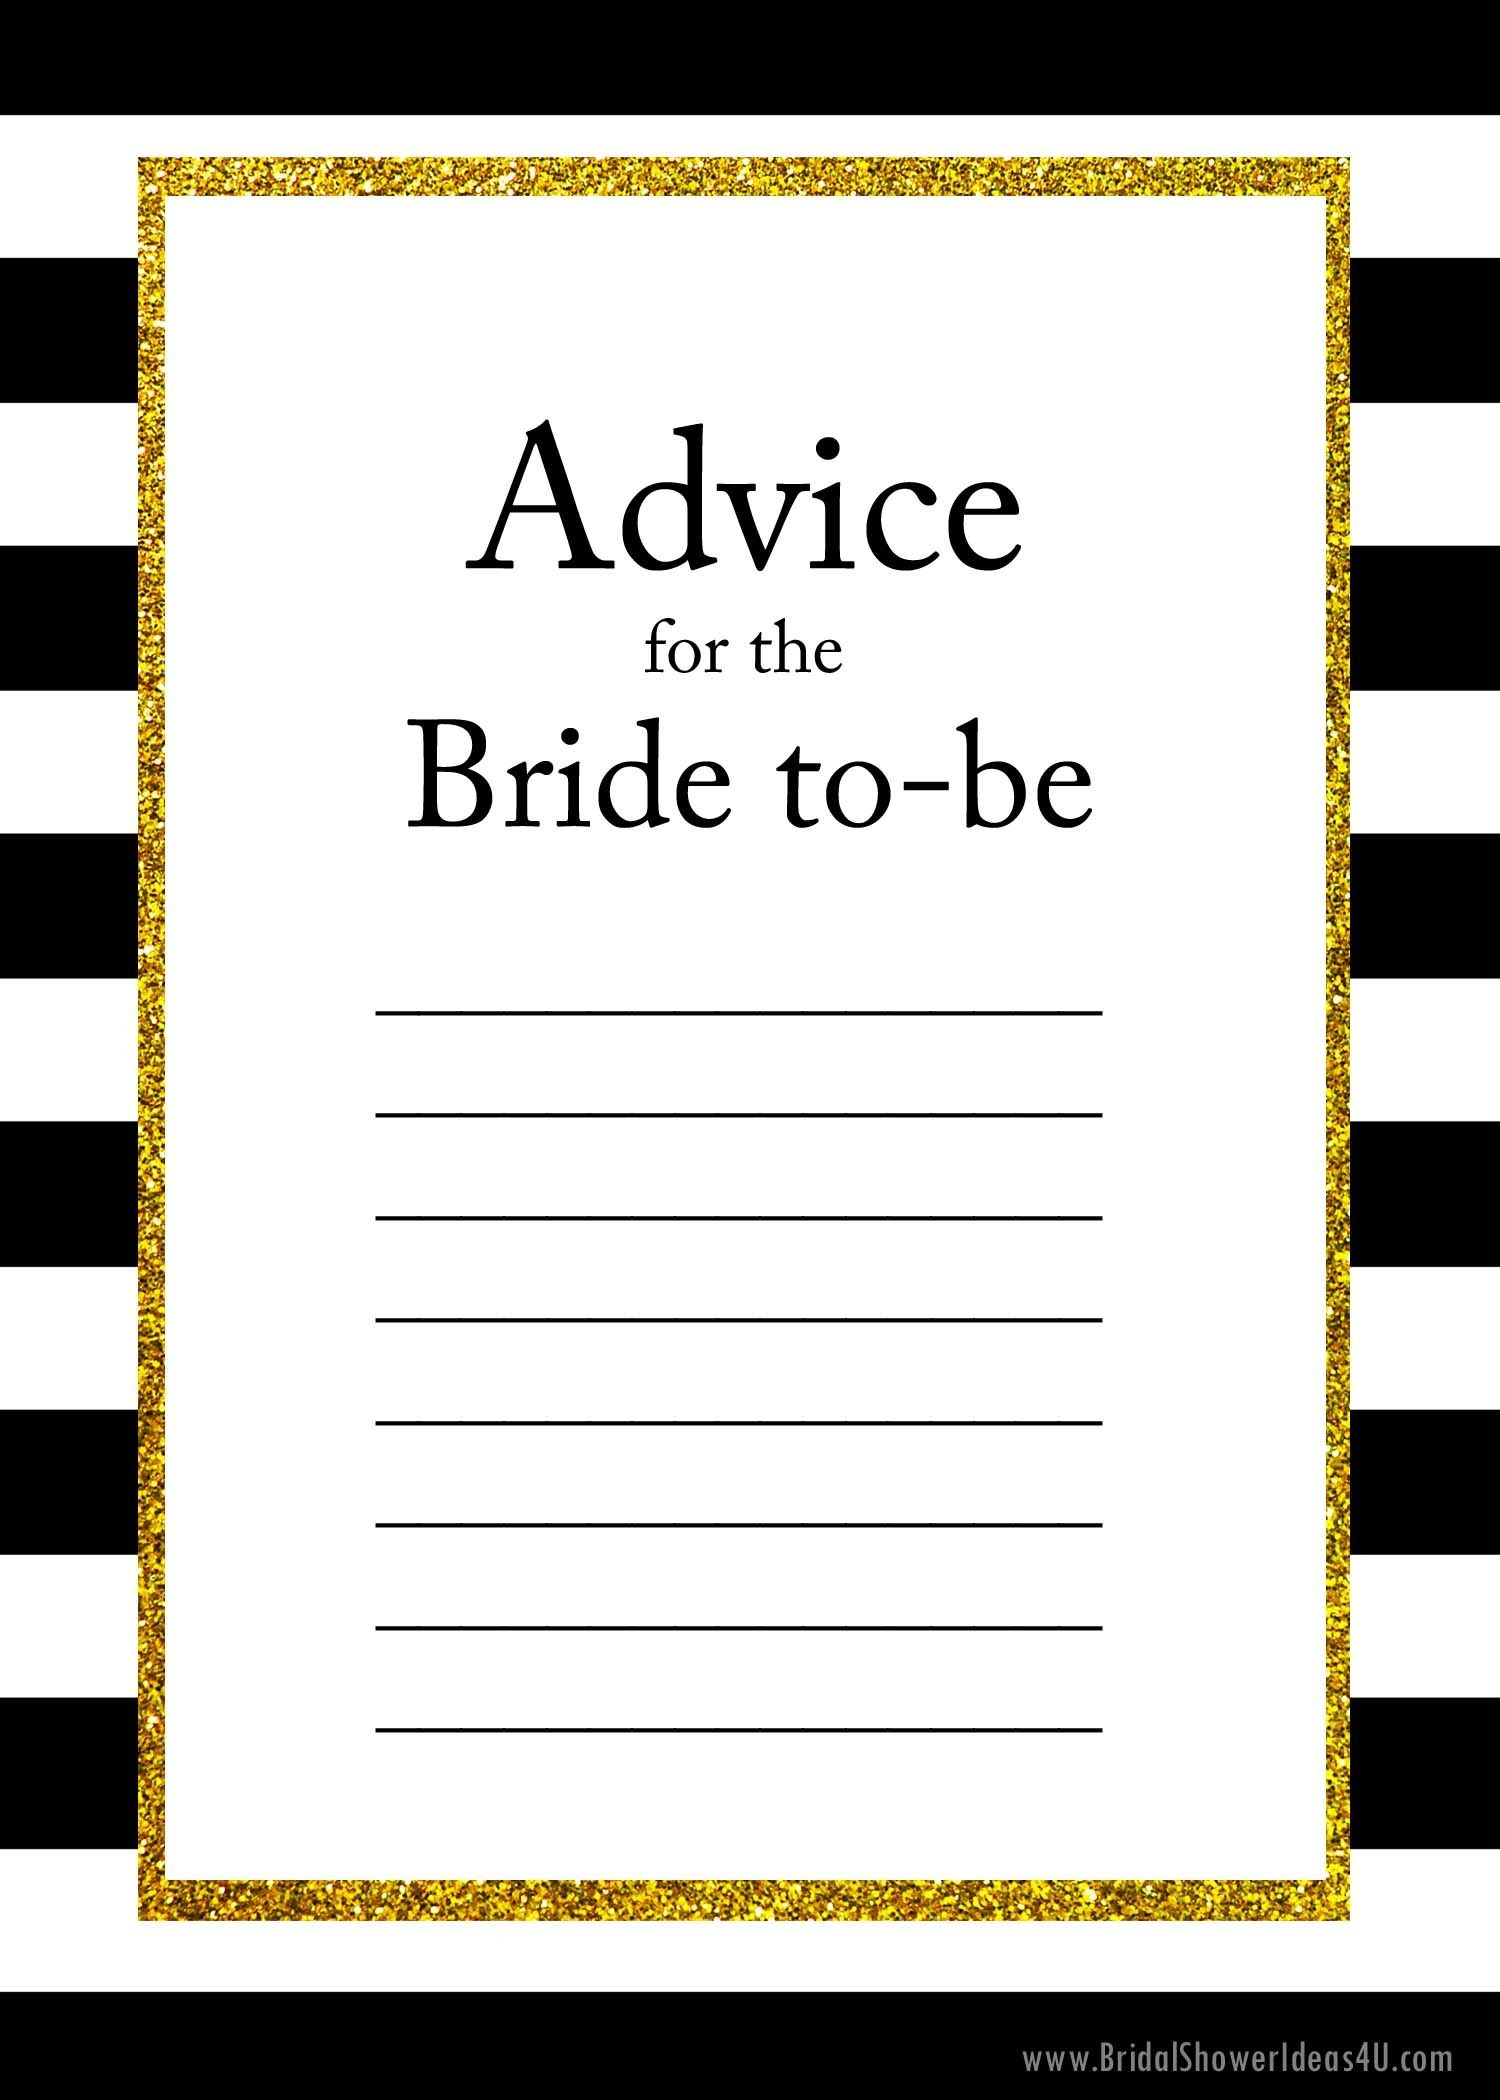 Free Printable Advice For The Bride To Be Cards | Bridal Shower - Free Bridal Shower Printable Decorations